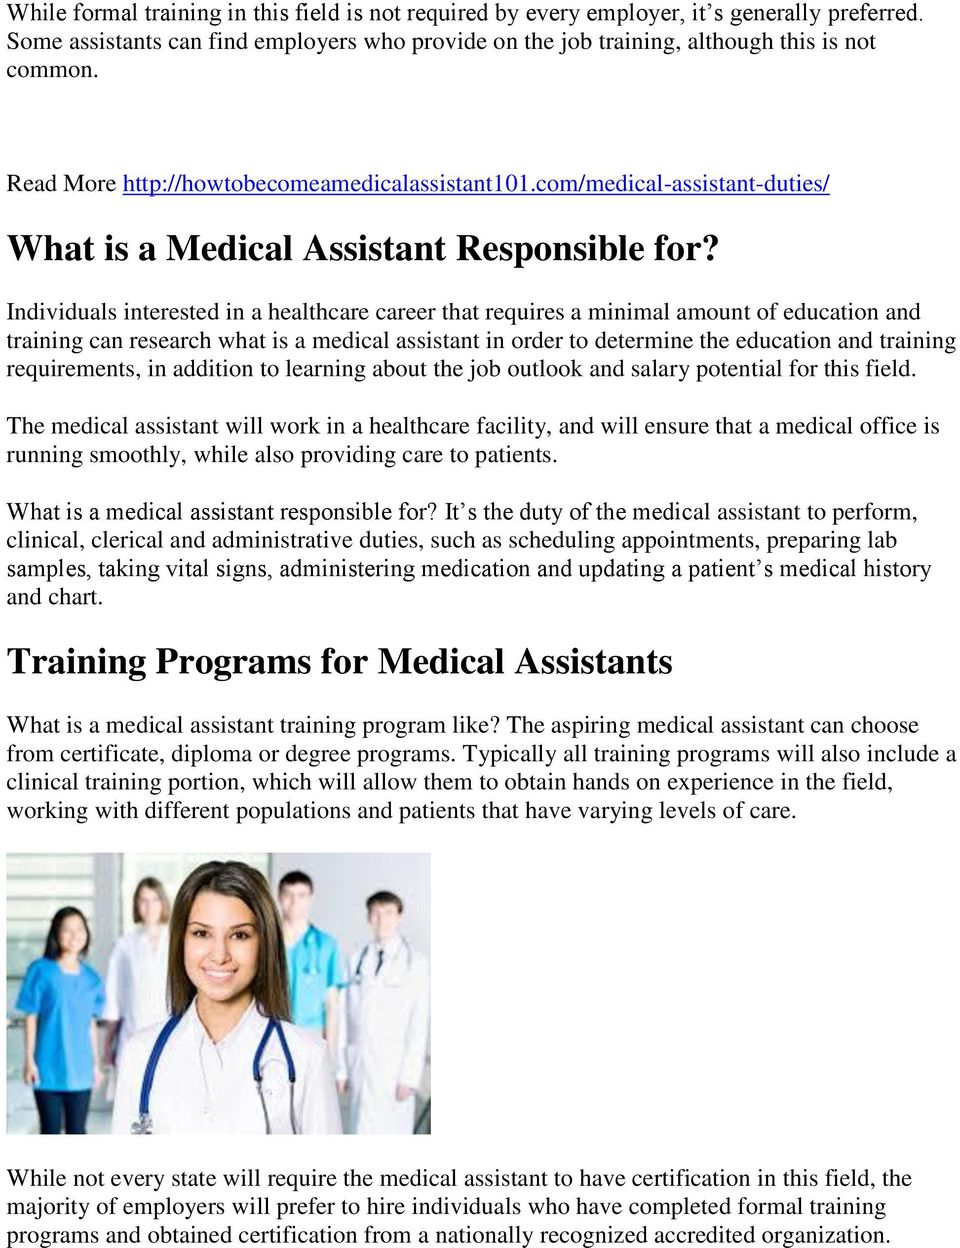 Individuals interested in a healthcare career that requires a minimal amount of education and training can research what is a medical assistant in order to determine the education and training